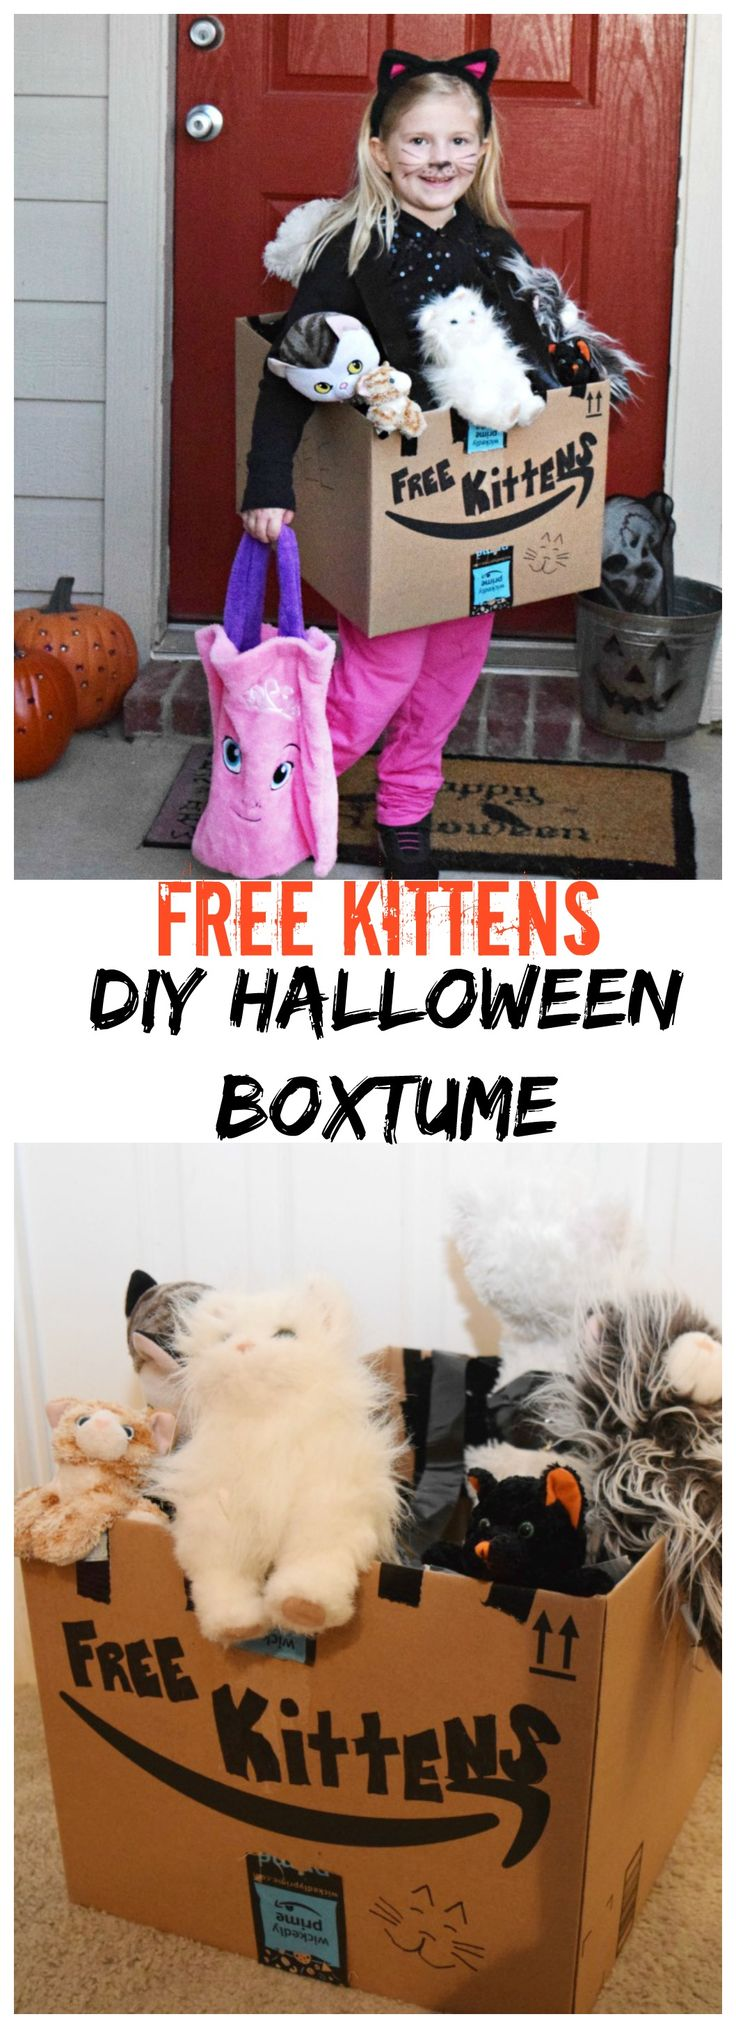 Need an easy kid costume? #ad Check out this DIY Free Kittens Boxtume Halloween costume! You can find everything you need to make your own #Boxtumes this #Halloween on @Amazon! #AmazonPrime